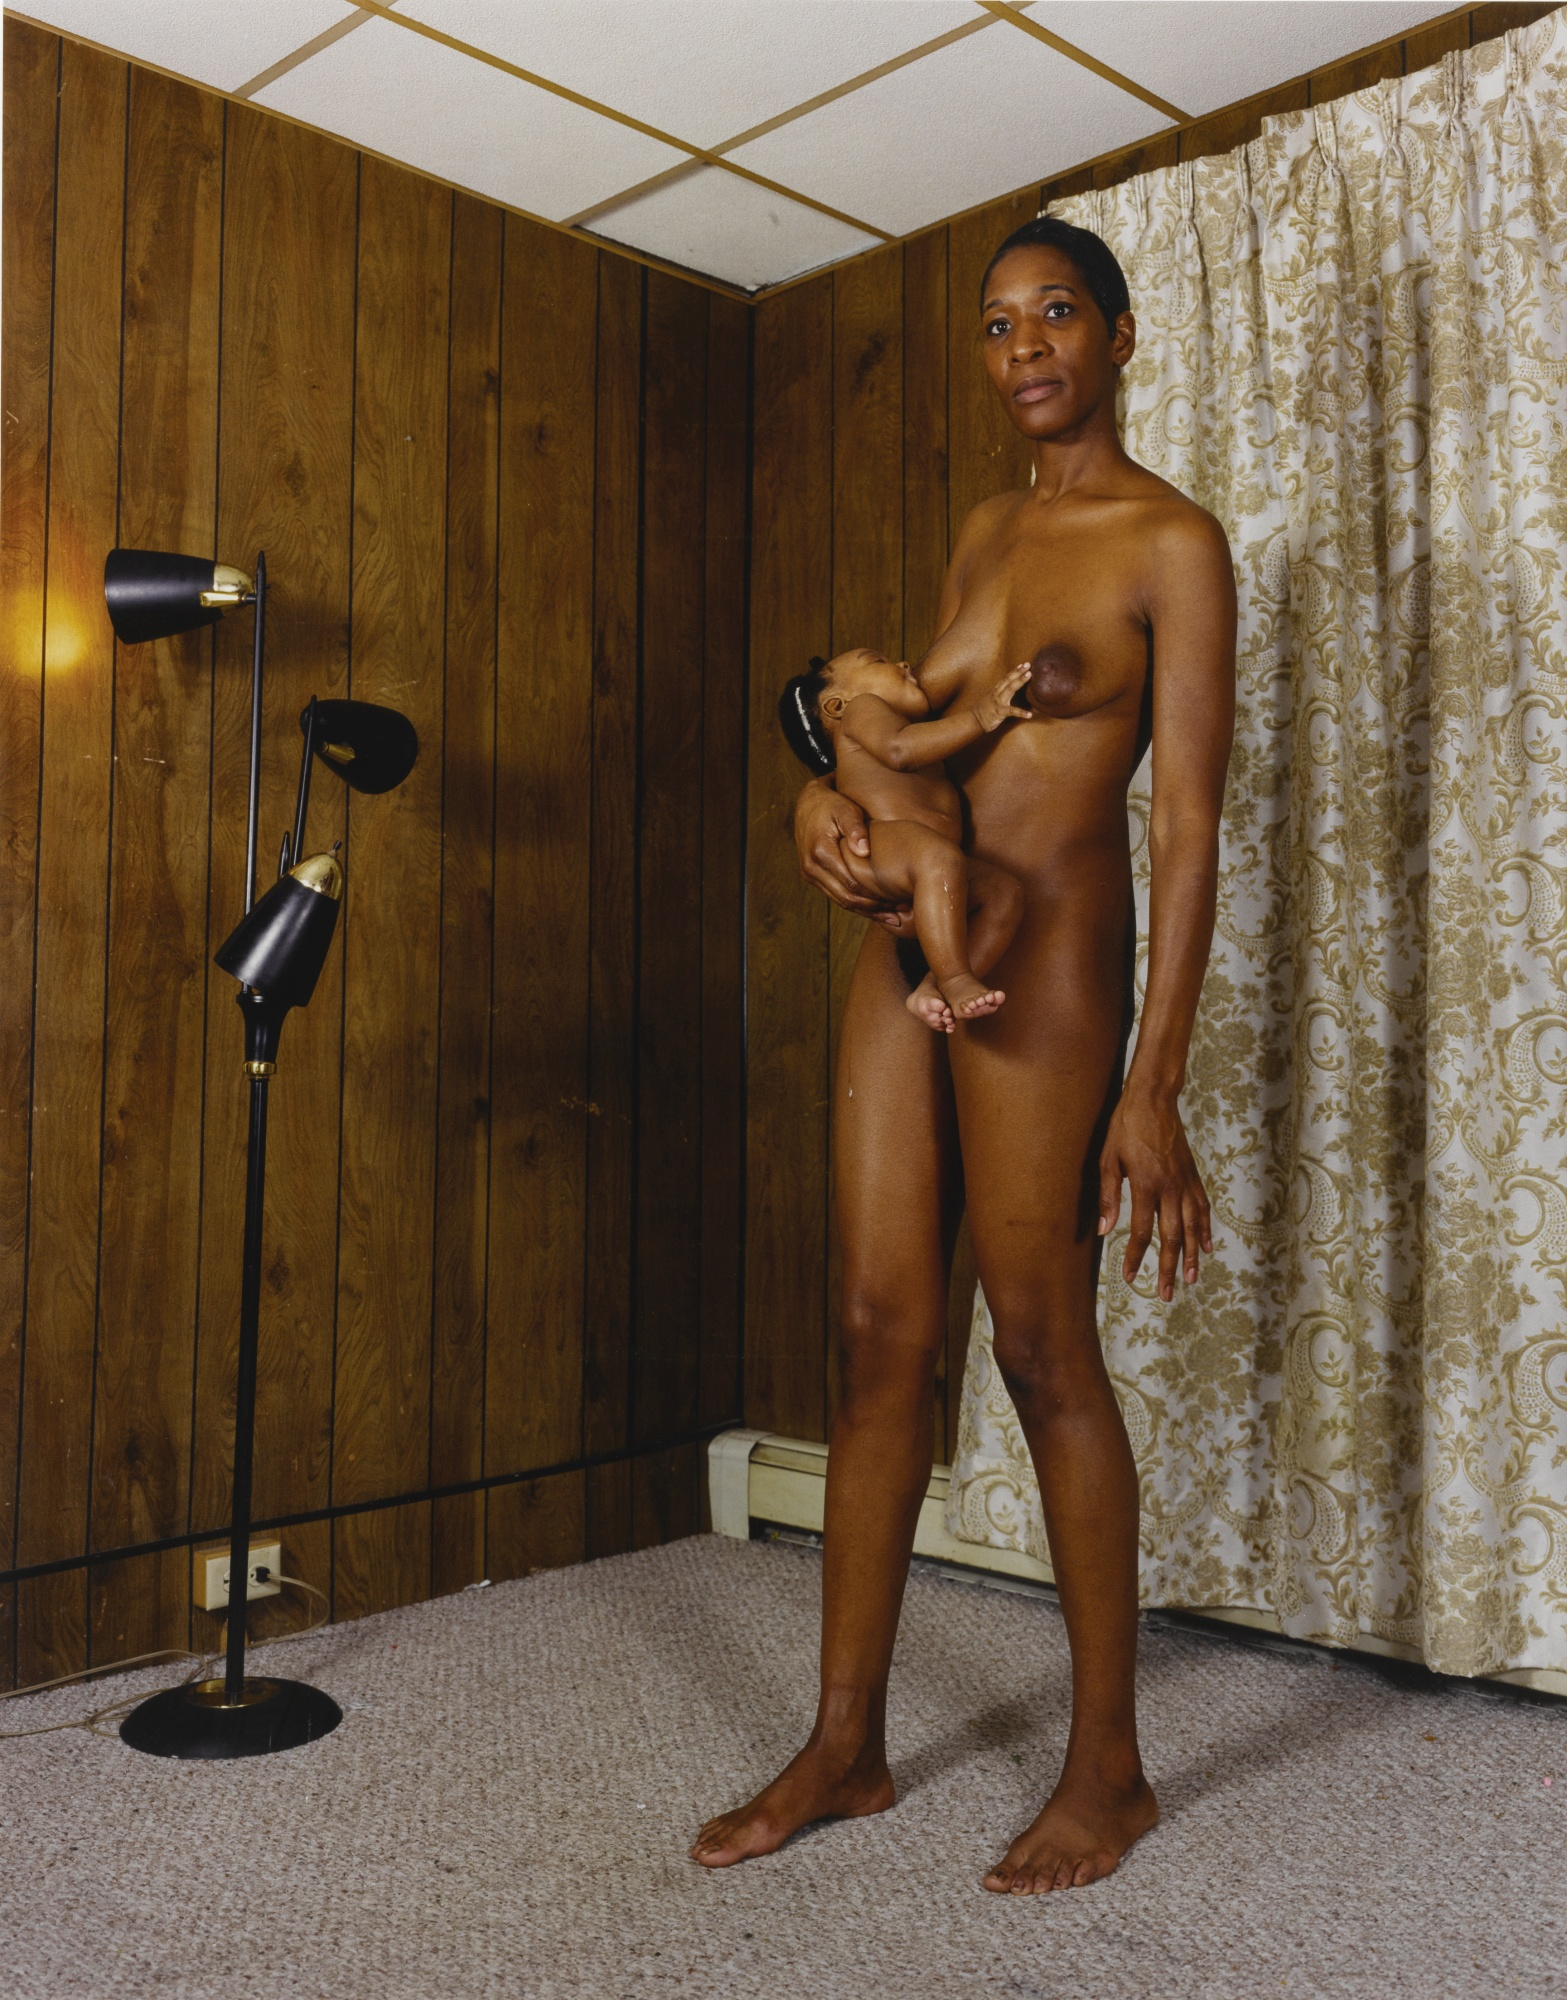 Katy Grannan-Mother & Child, Poughkeepsie, Ny-2000